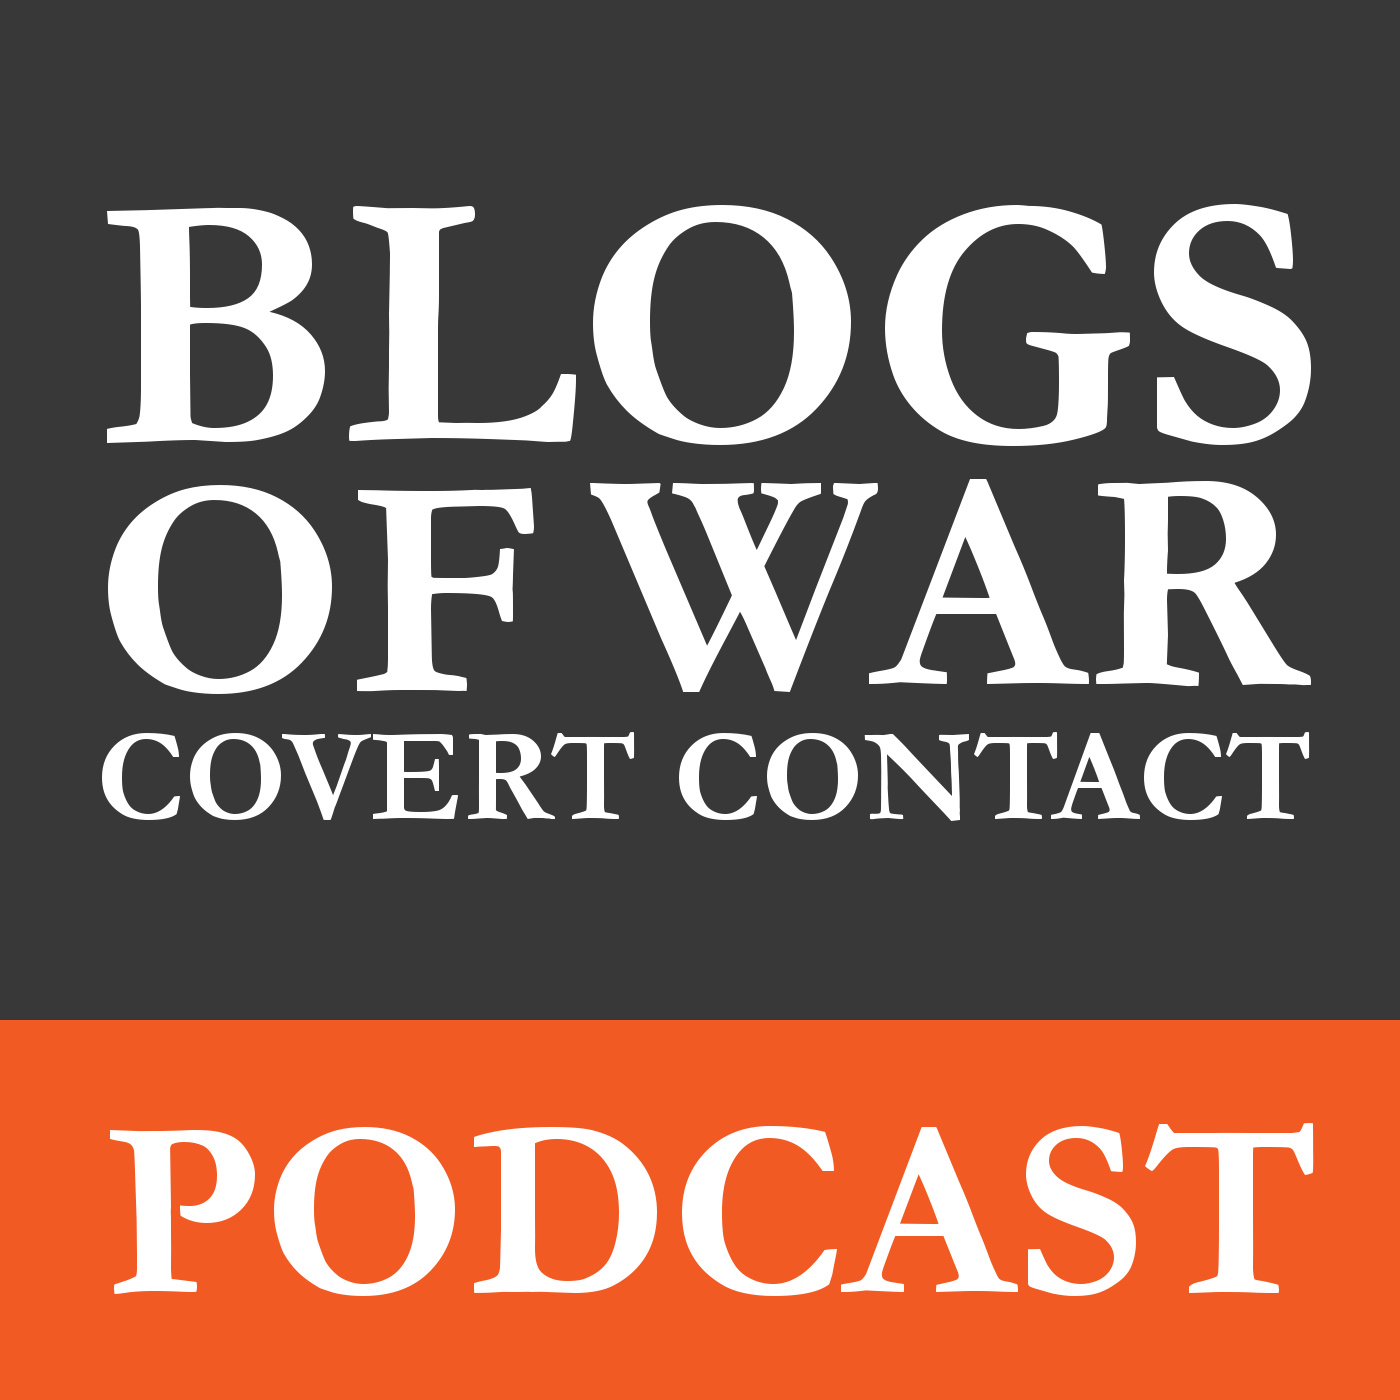 Covert Contact: The Blogs of War Podcast logo